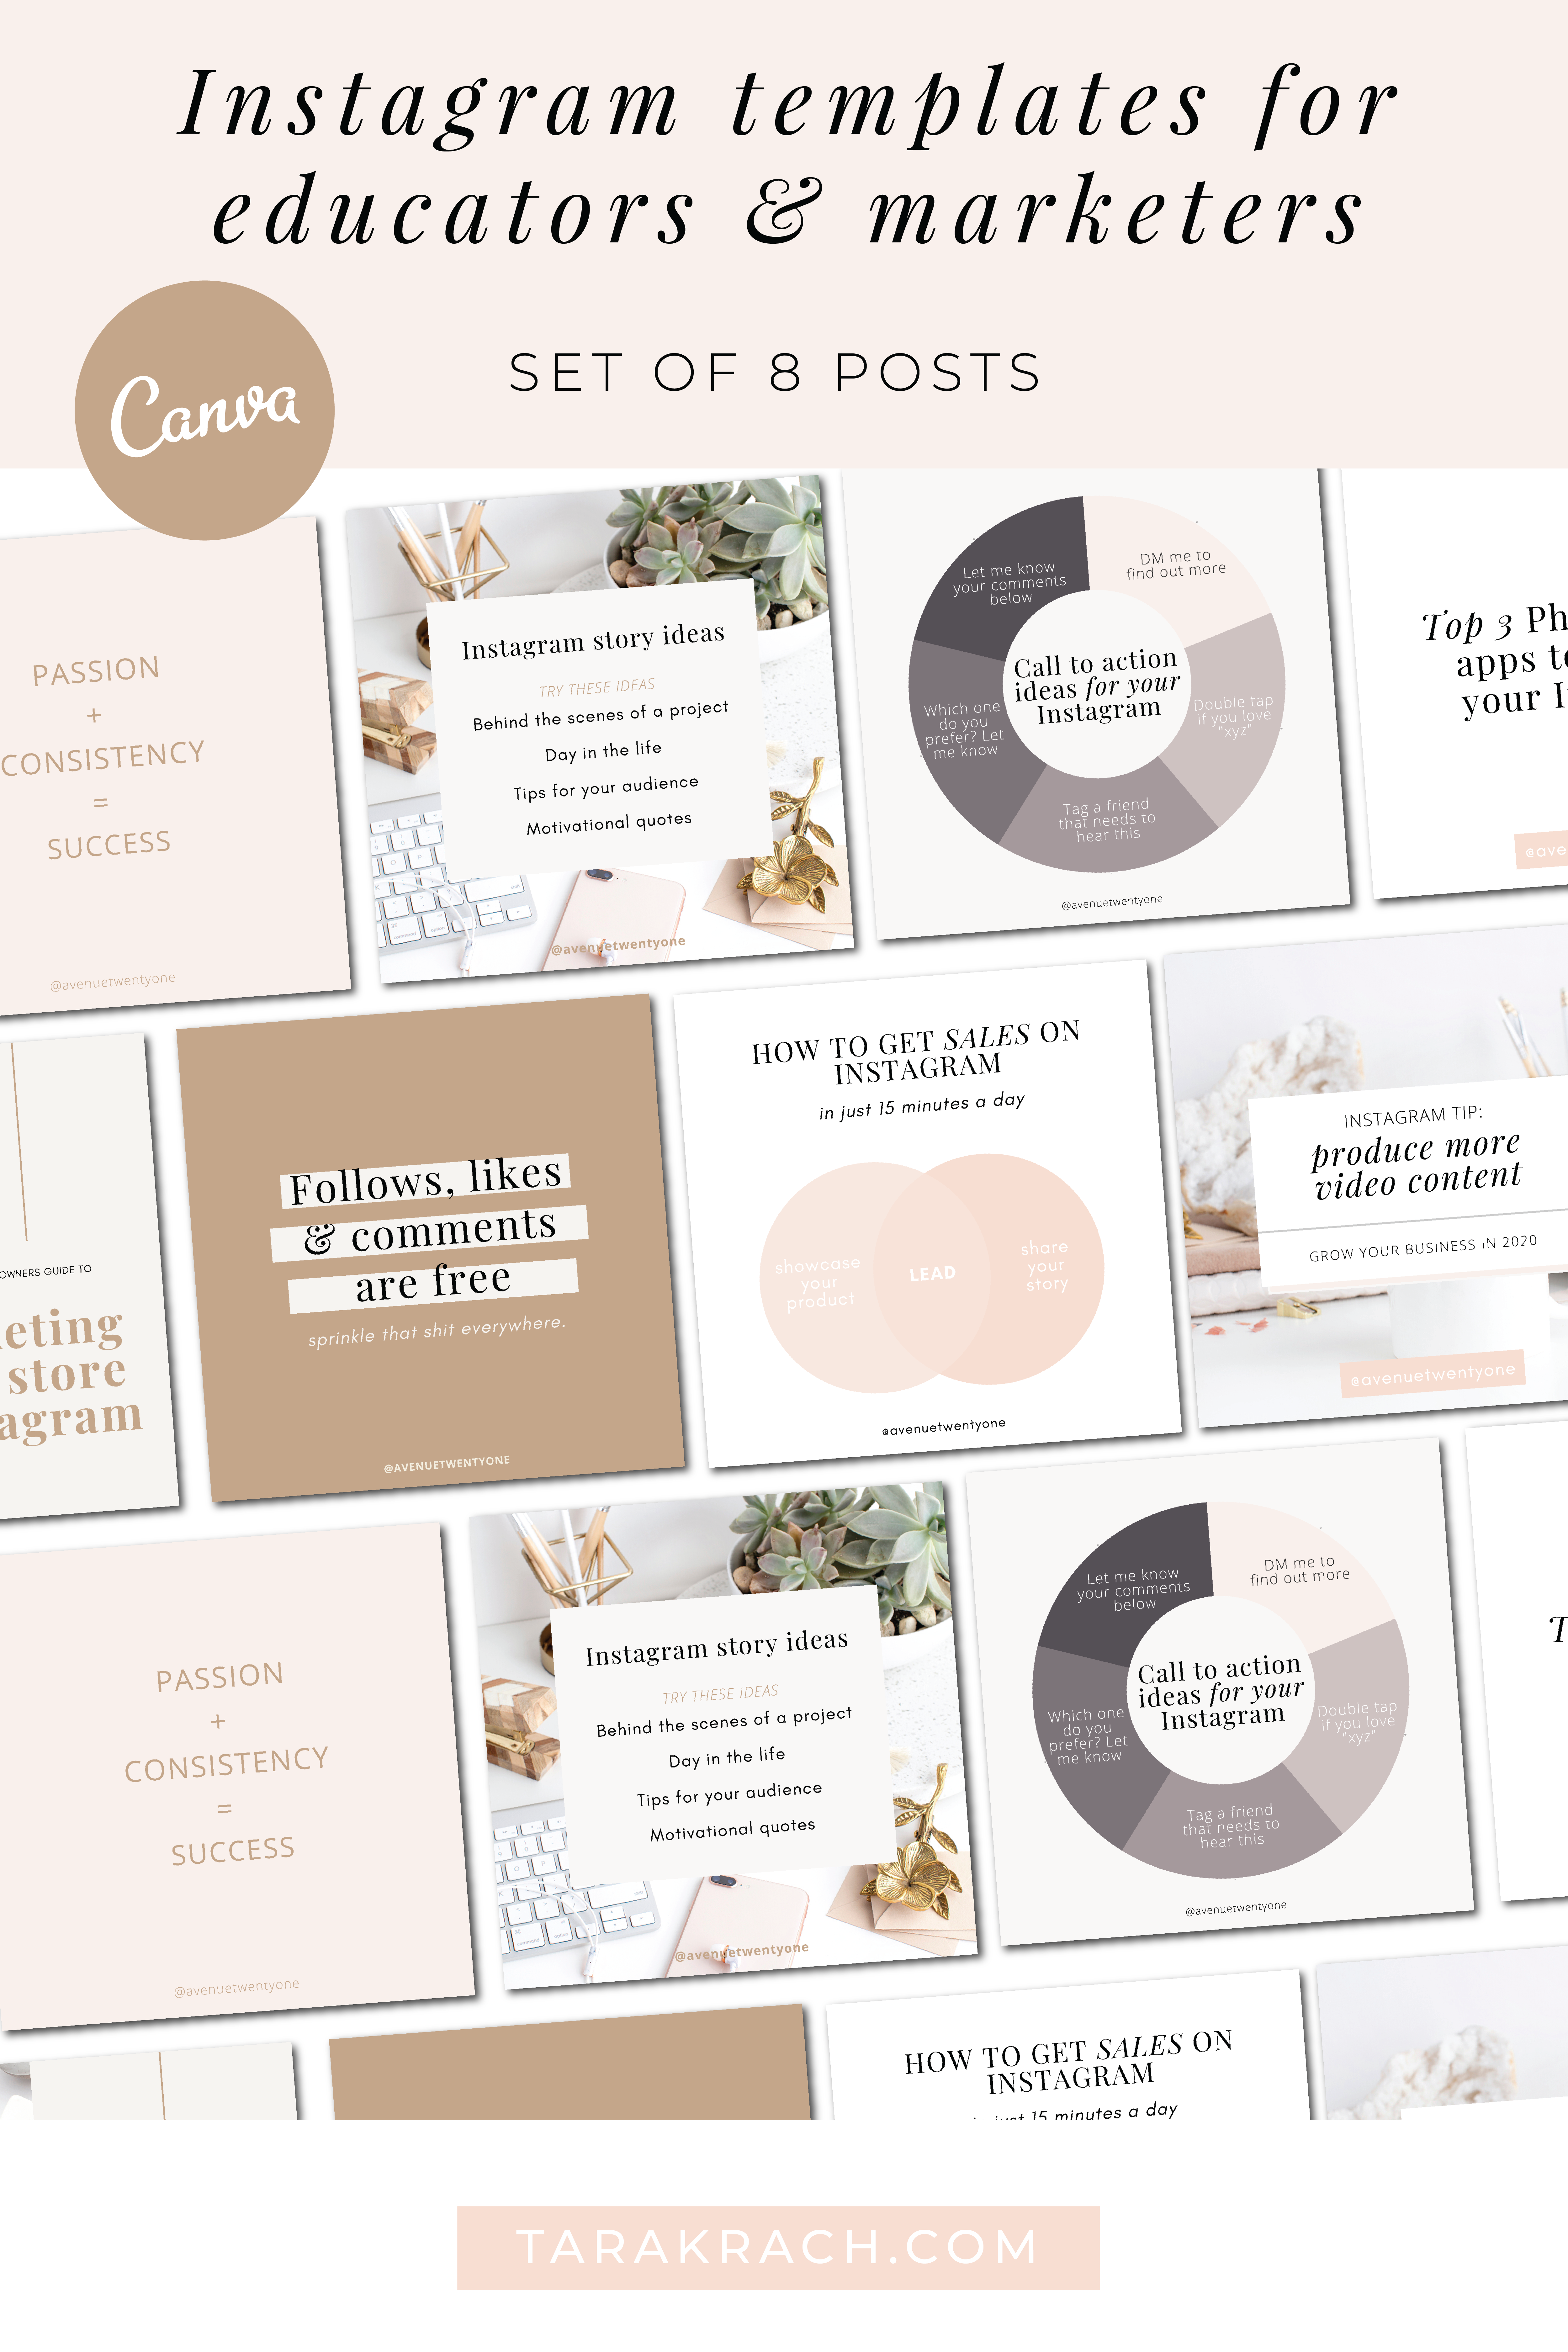 Canva templates for marketers